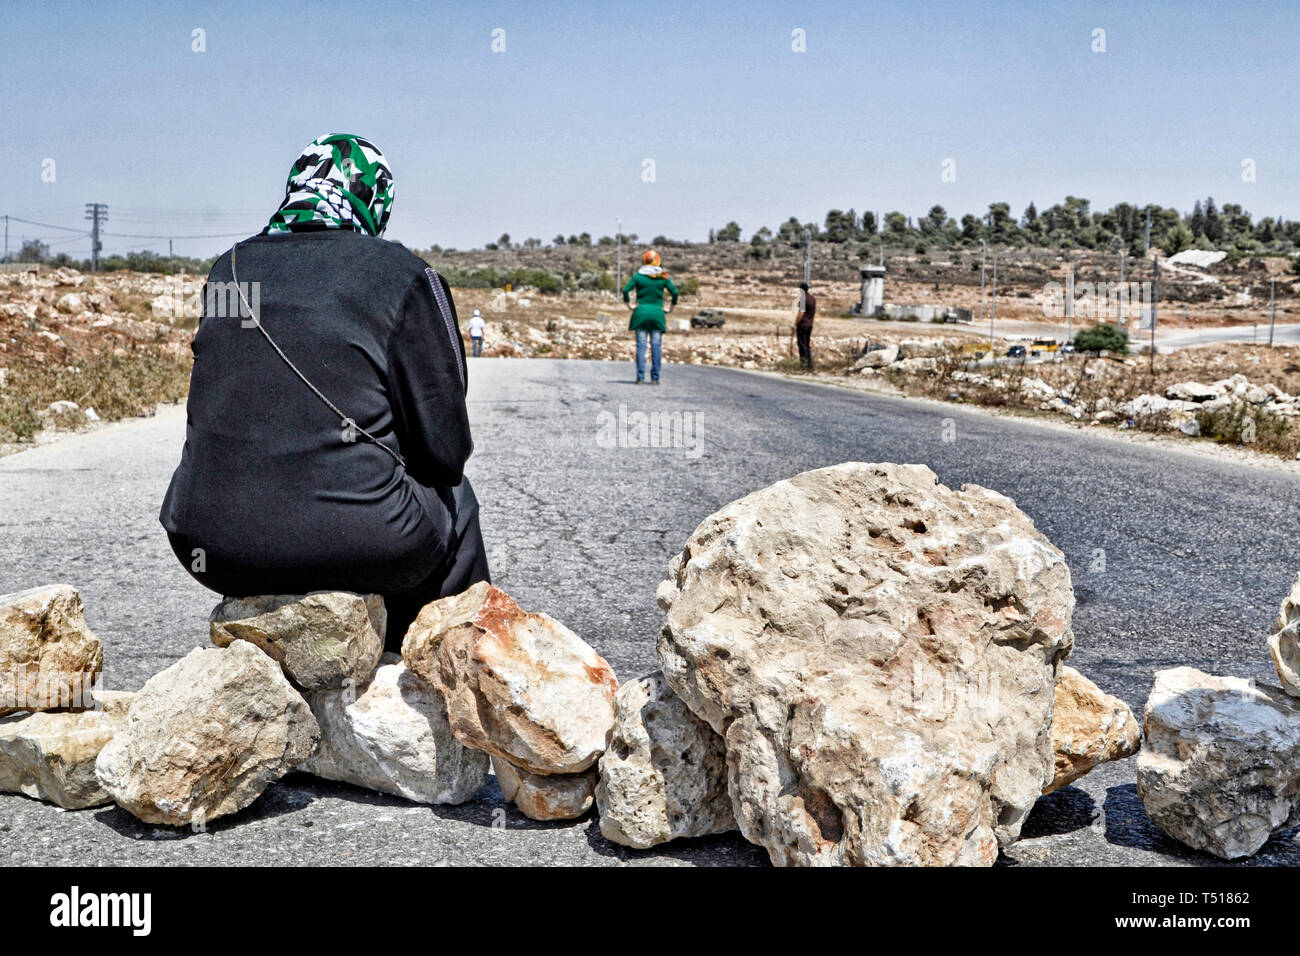 Palestinian woman protesting against the closure of a road by Israeli troops in the West Bank - Stock Image